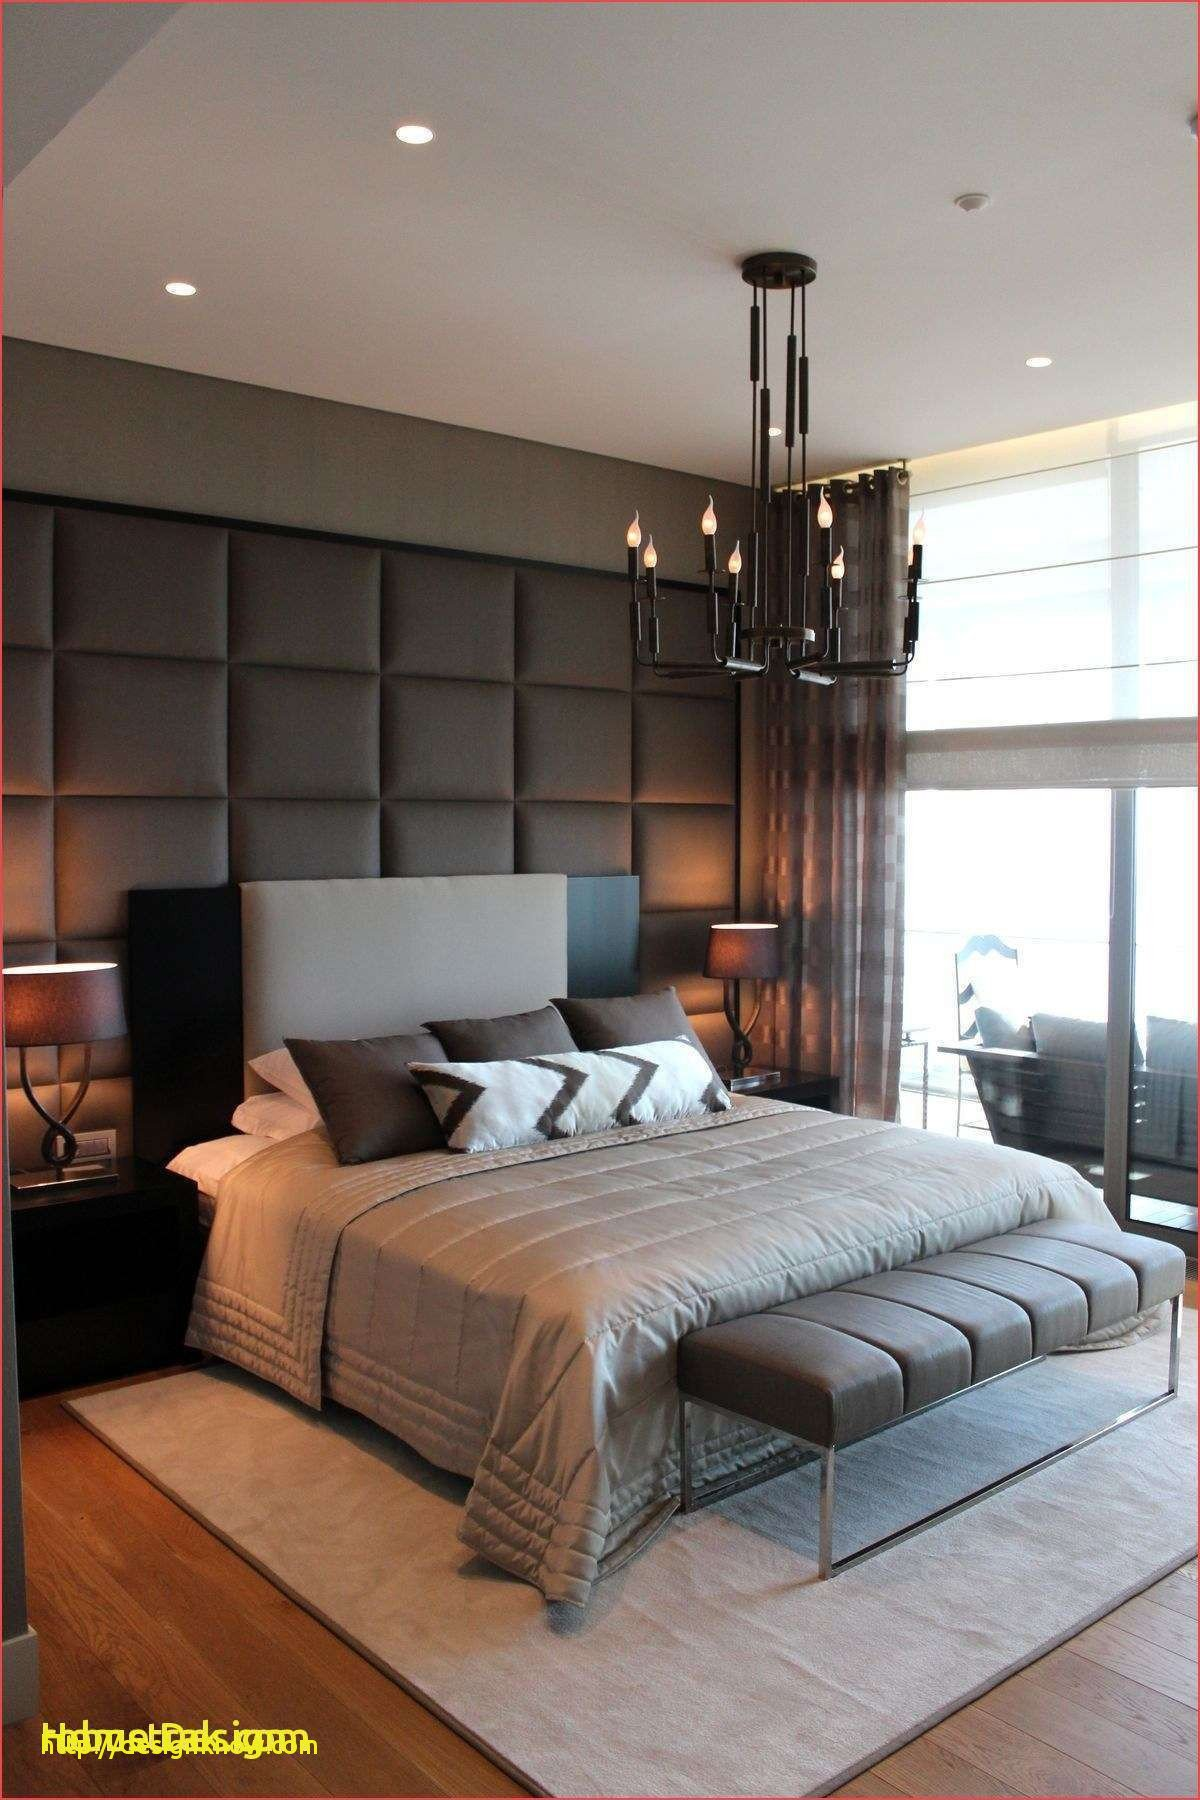 Small Bedroom Decorating Ideas Elegant Best Modern Interior Design for Small Spaces